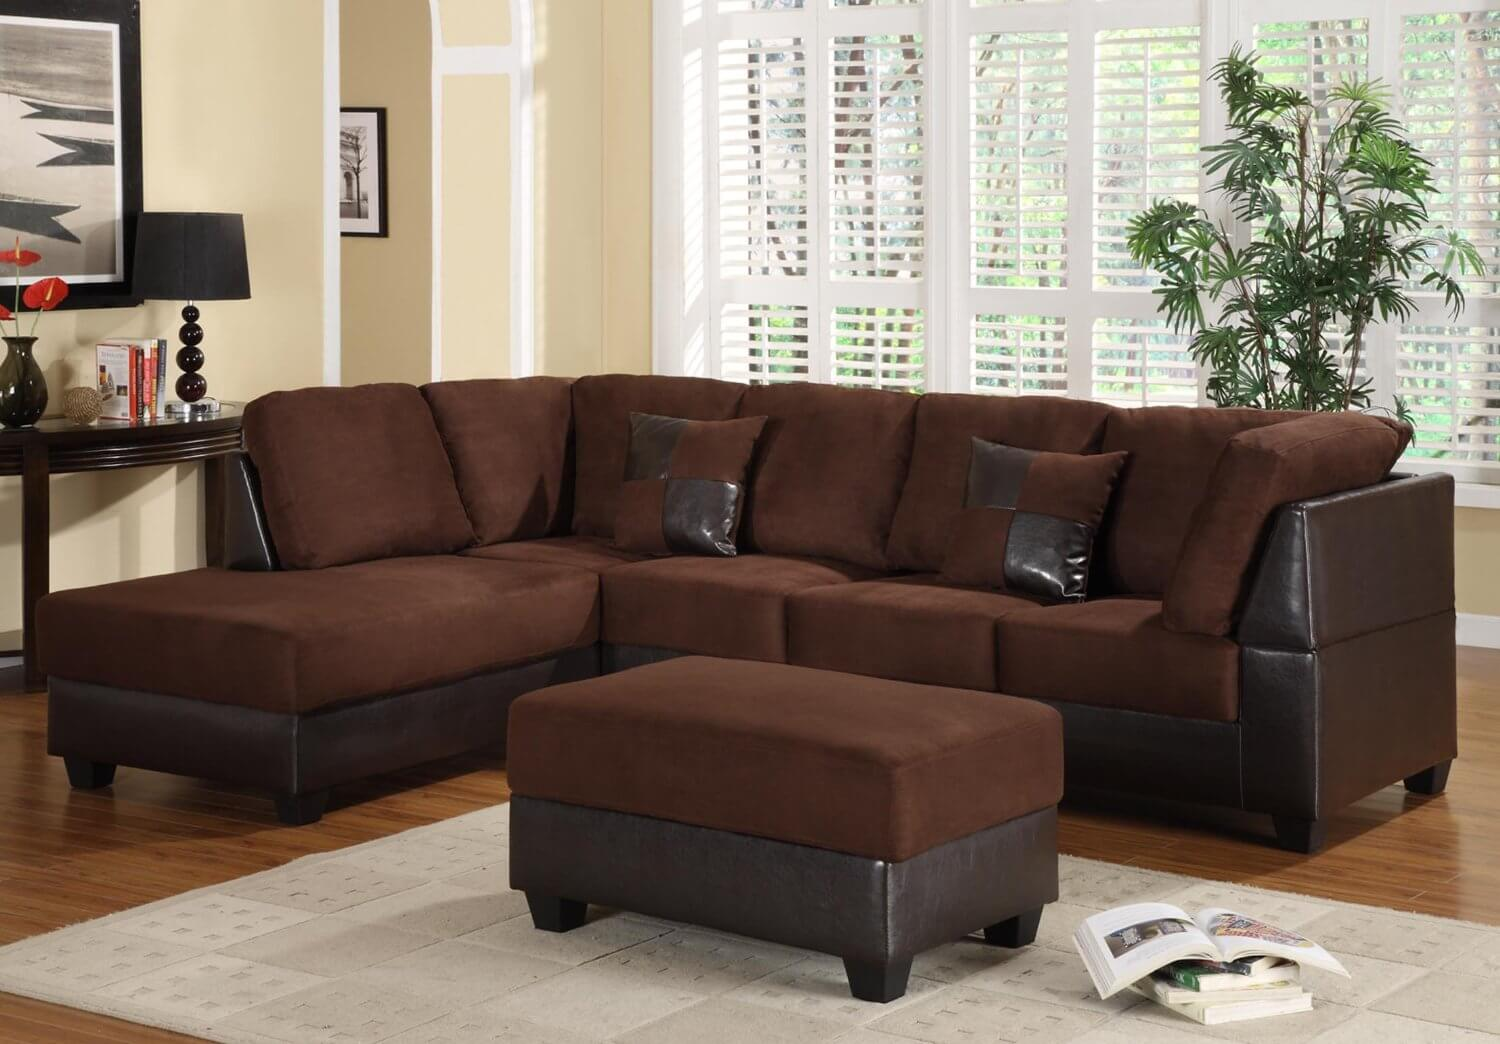 Small Sofas Under $500 13 Cheap Sectional Sofas Under $500 For 2019